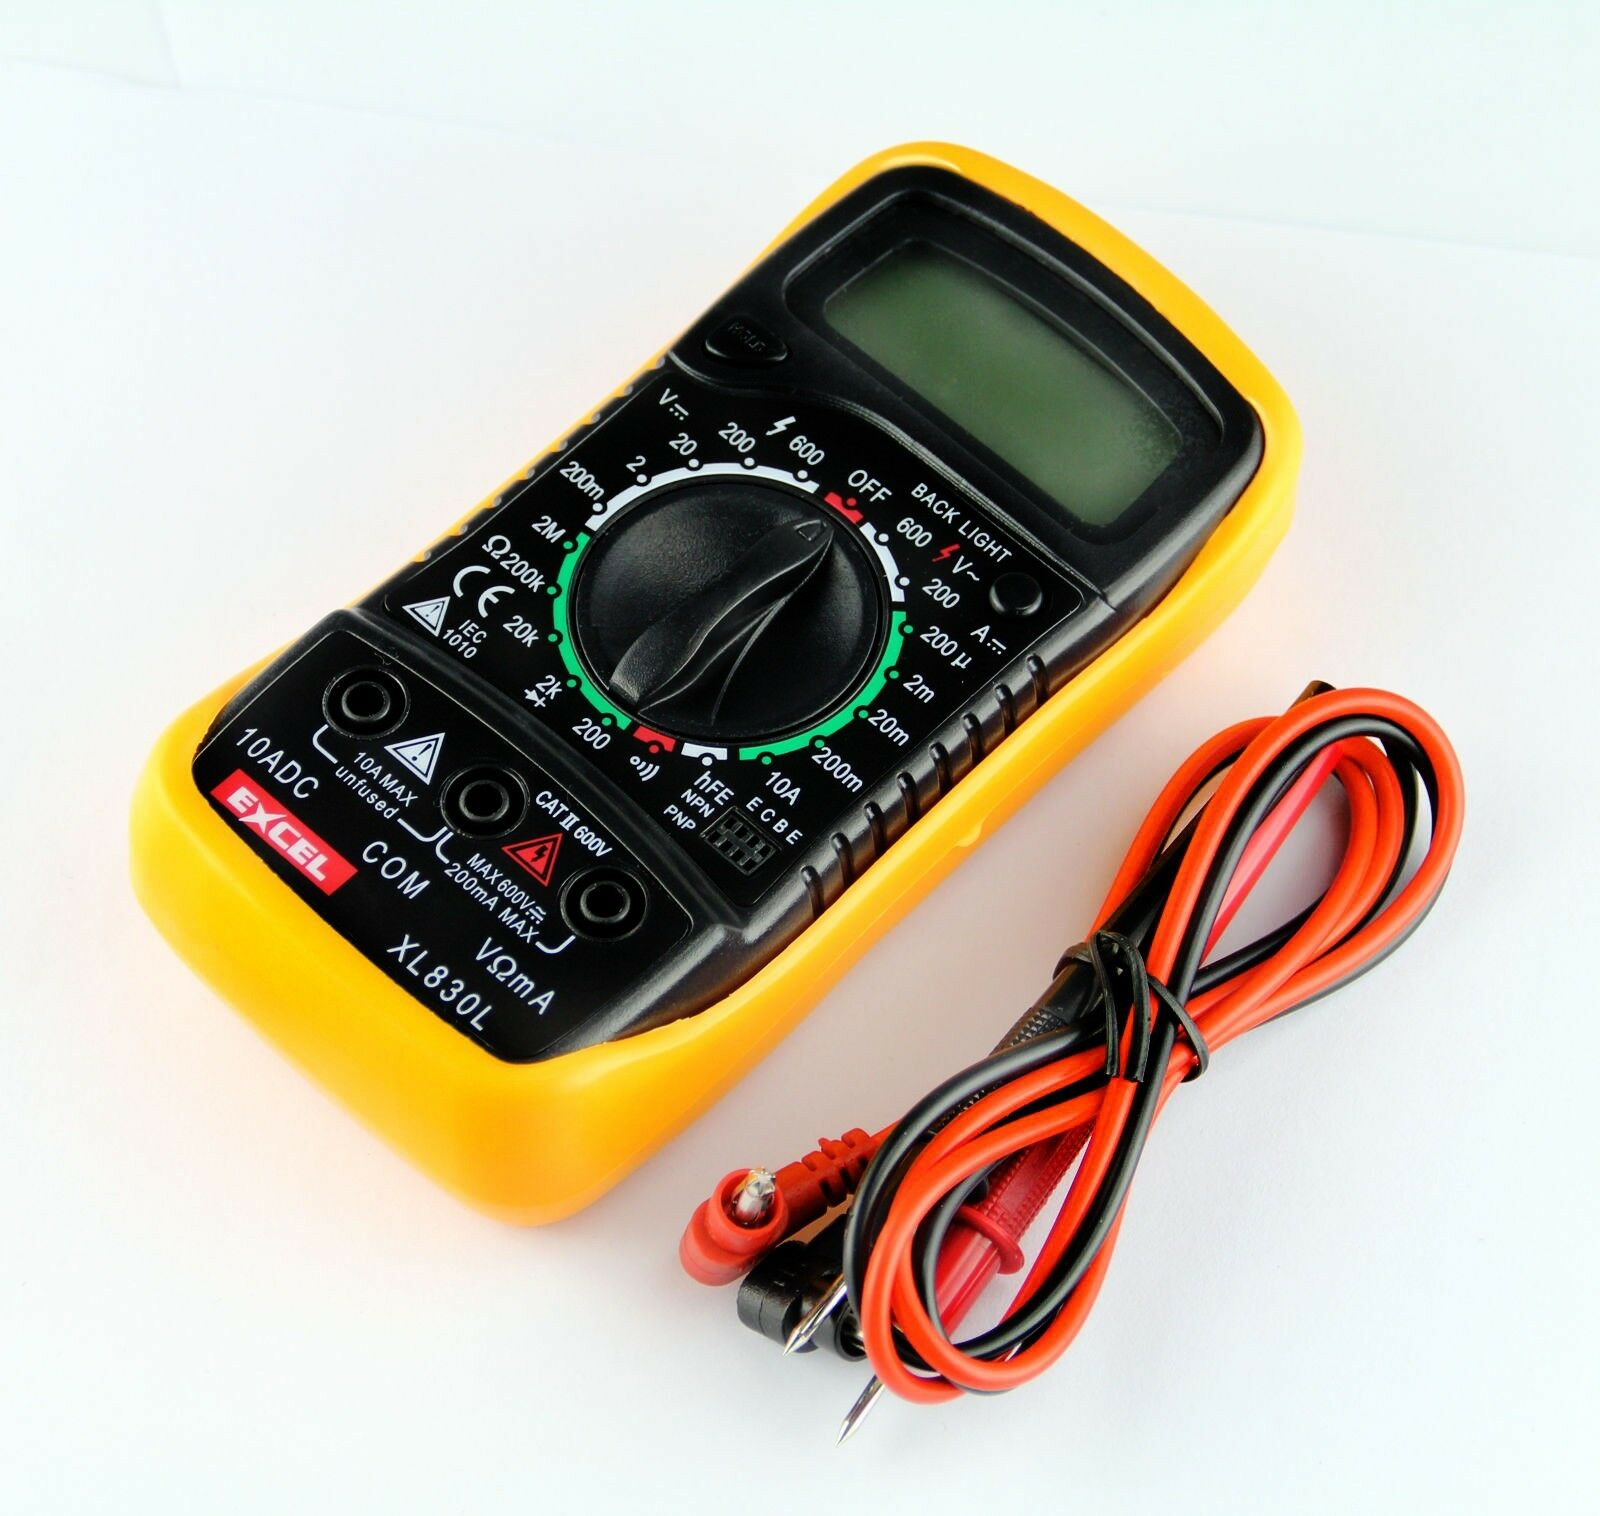 Hand Held Tester : New large digital multimeter hand held tester electrical